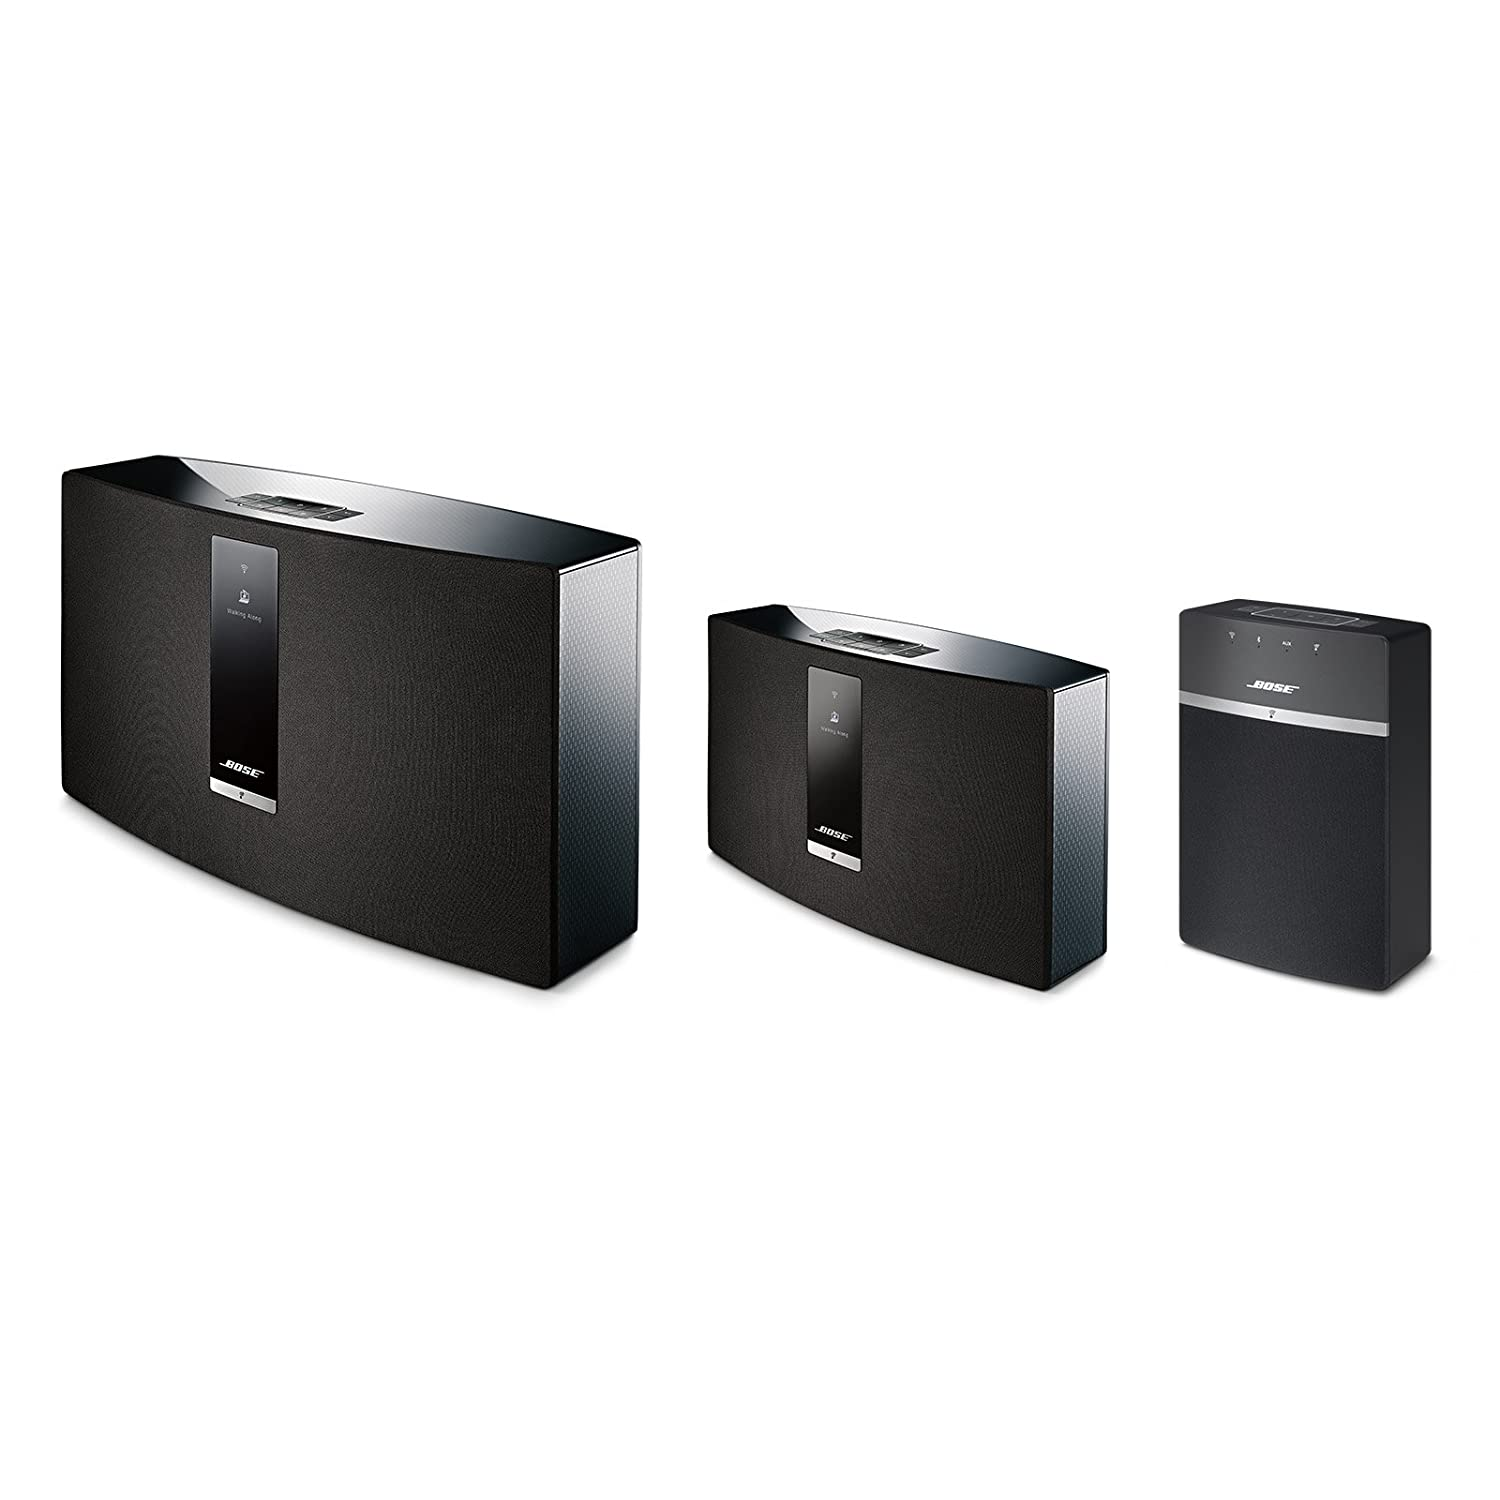 Bose soundtouch 130 home theater system black 738484 1100 b amp h - Bose Soundtouch 130 Home Theater System Black 738484 1100 B Amp H 20